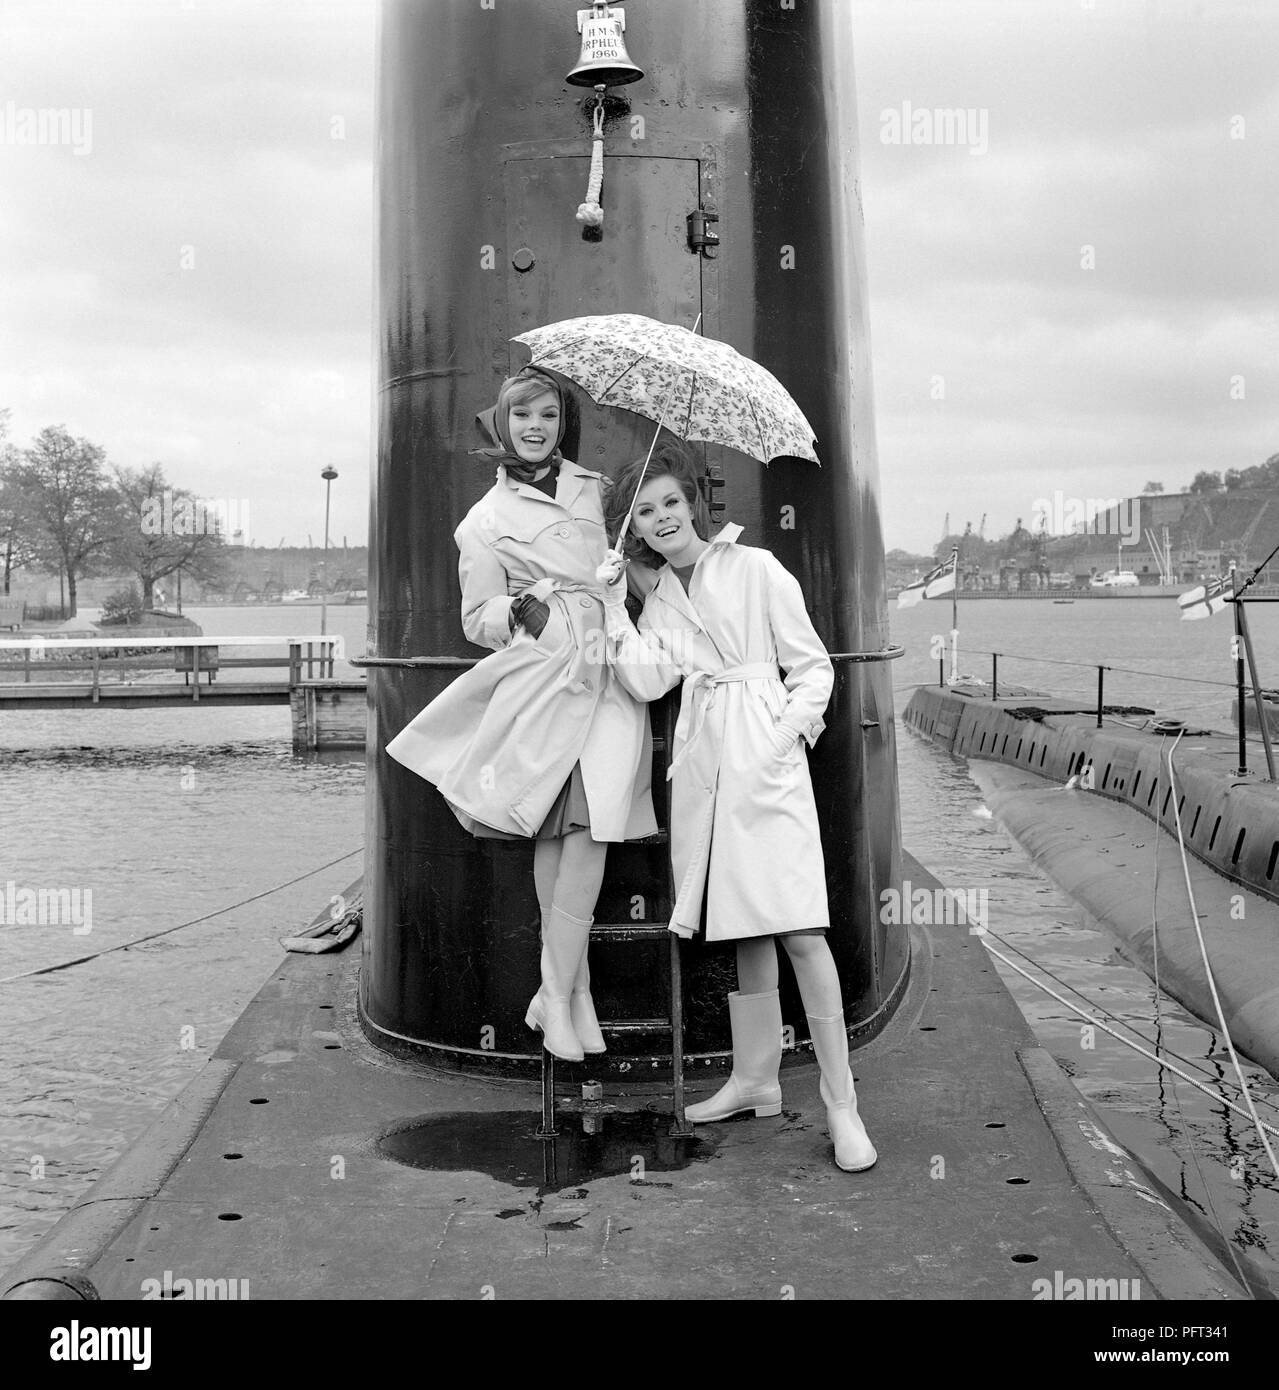 1960s fashion. Two fashion models pictured aboard the British submarine Orpheus. The submarine is anchored in the port of Stockholm. The models are wearing the autumns fashion of raincoats. Sweden May 1962 - Stock Image